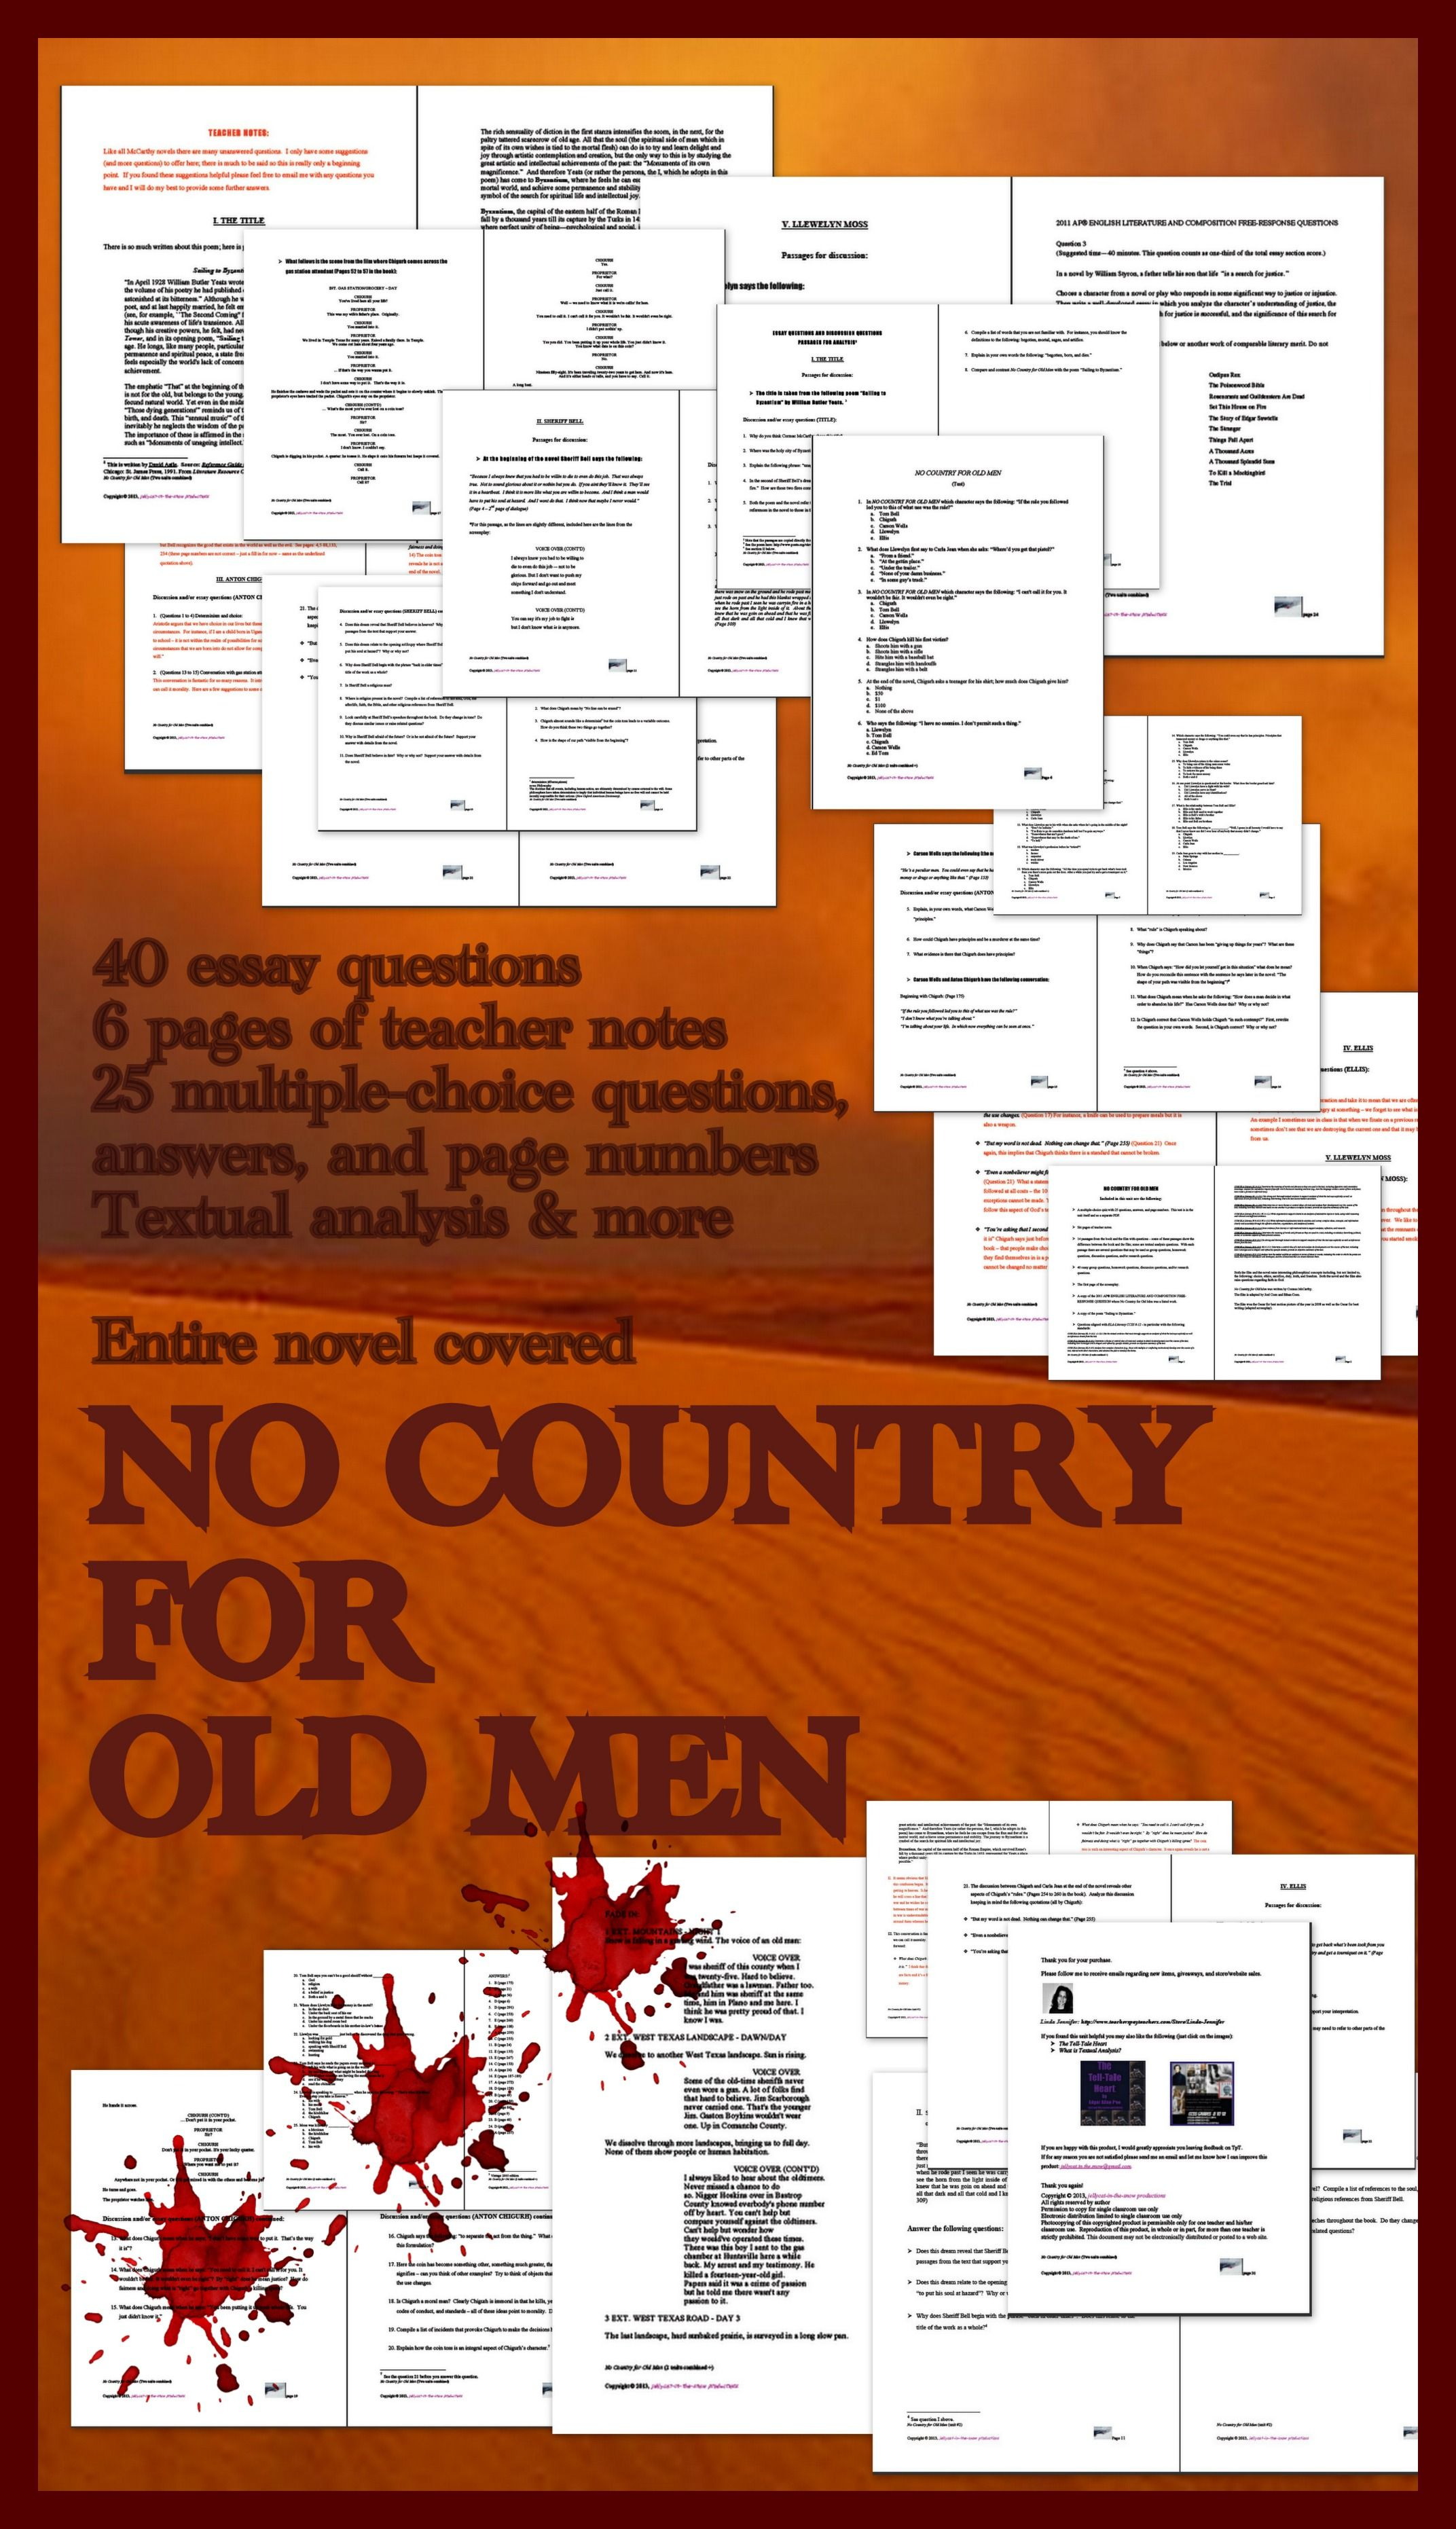 cormac mccarthy no country for old men essay